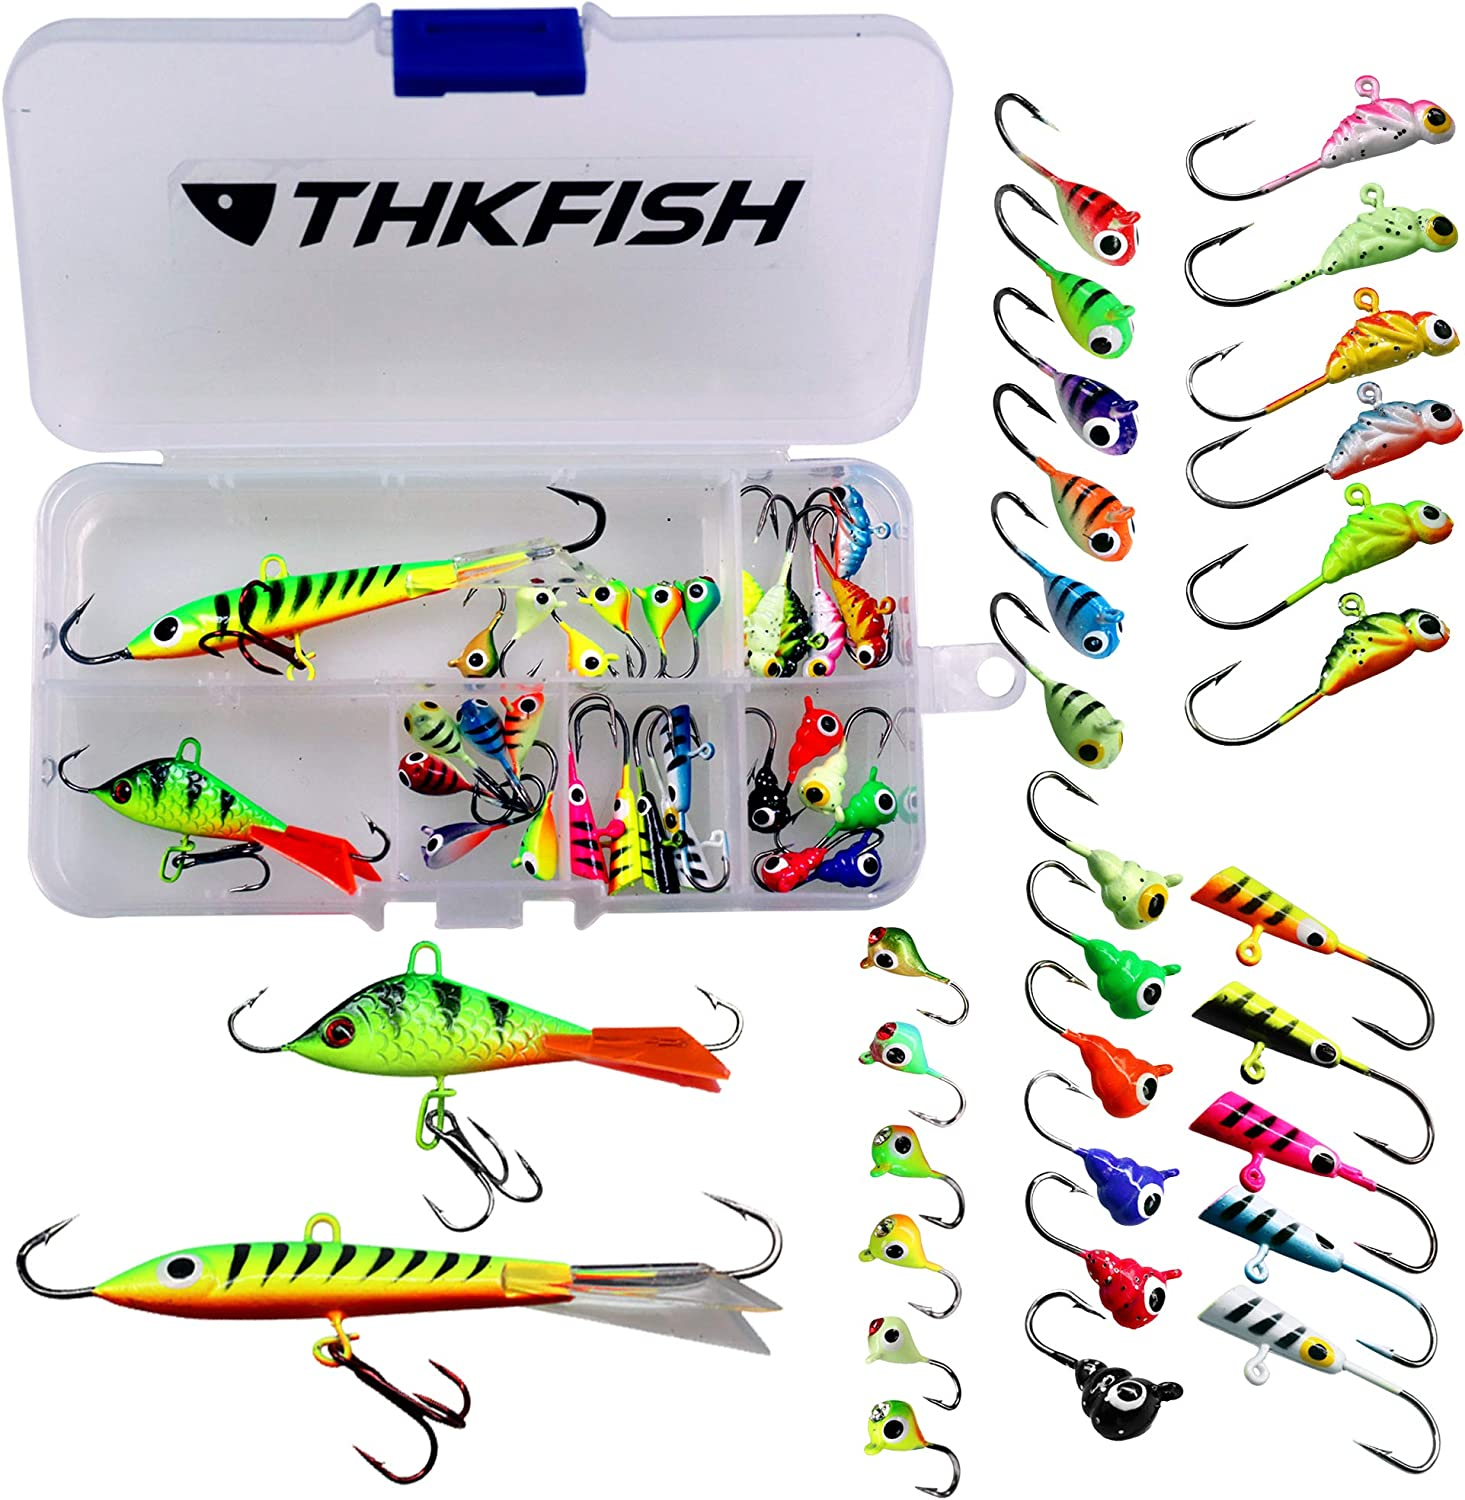 thkfish 31Pcs/50Pcs/box Ice Fishing Jigs Head Lure Baits Fishing Hooks Kit for Winter Fishing Jigging Walleye